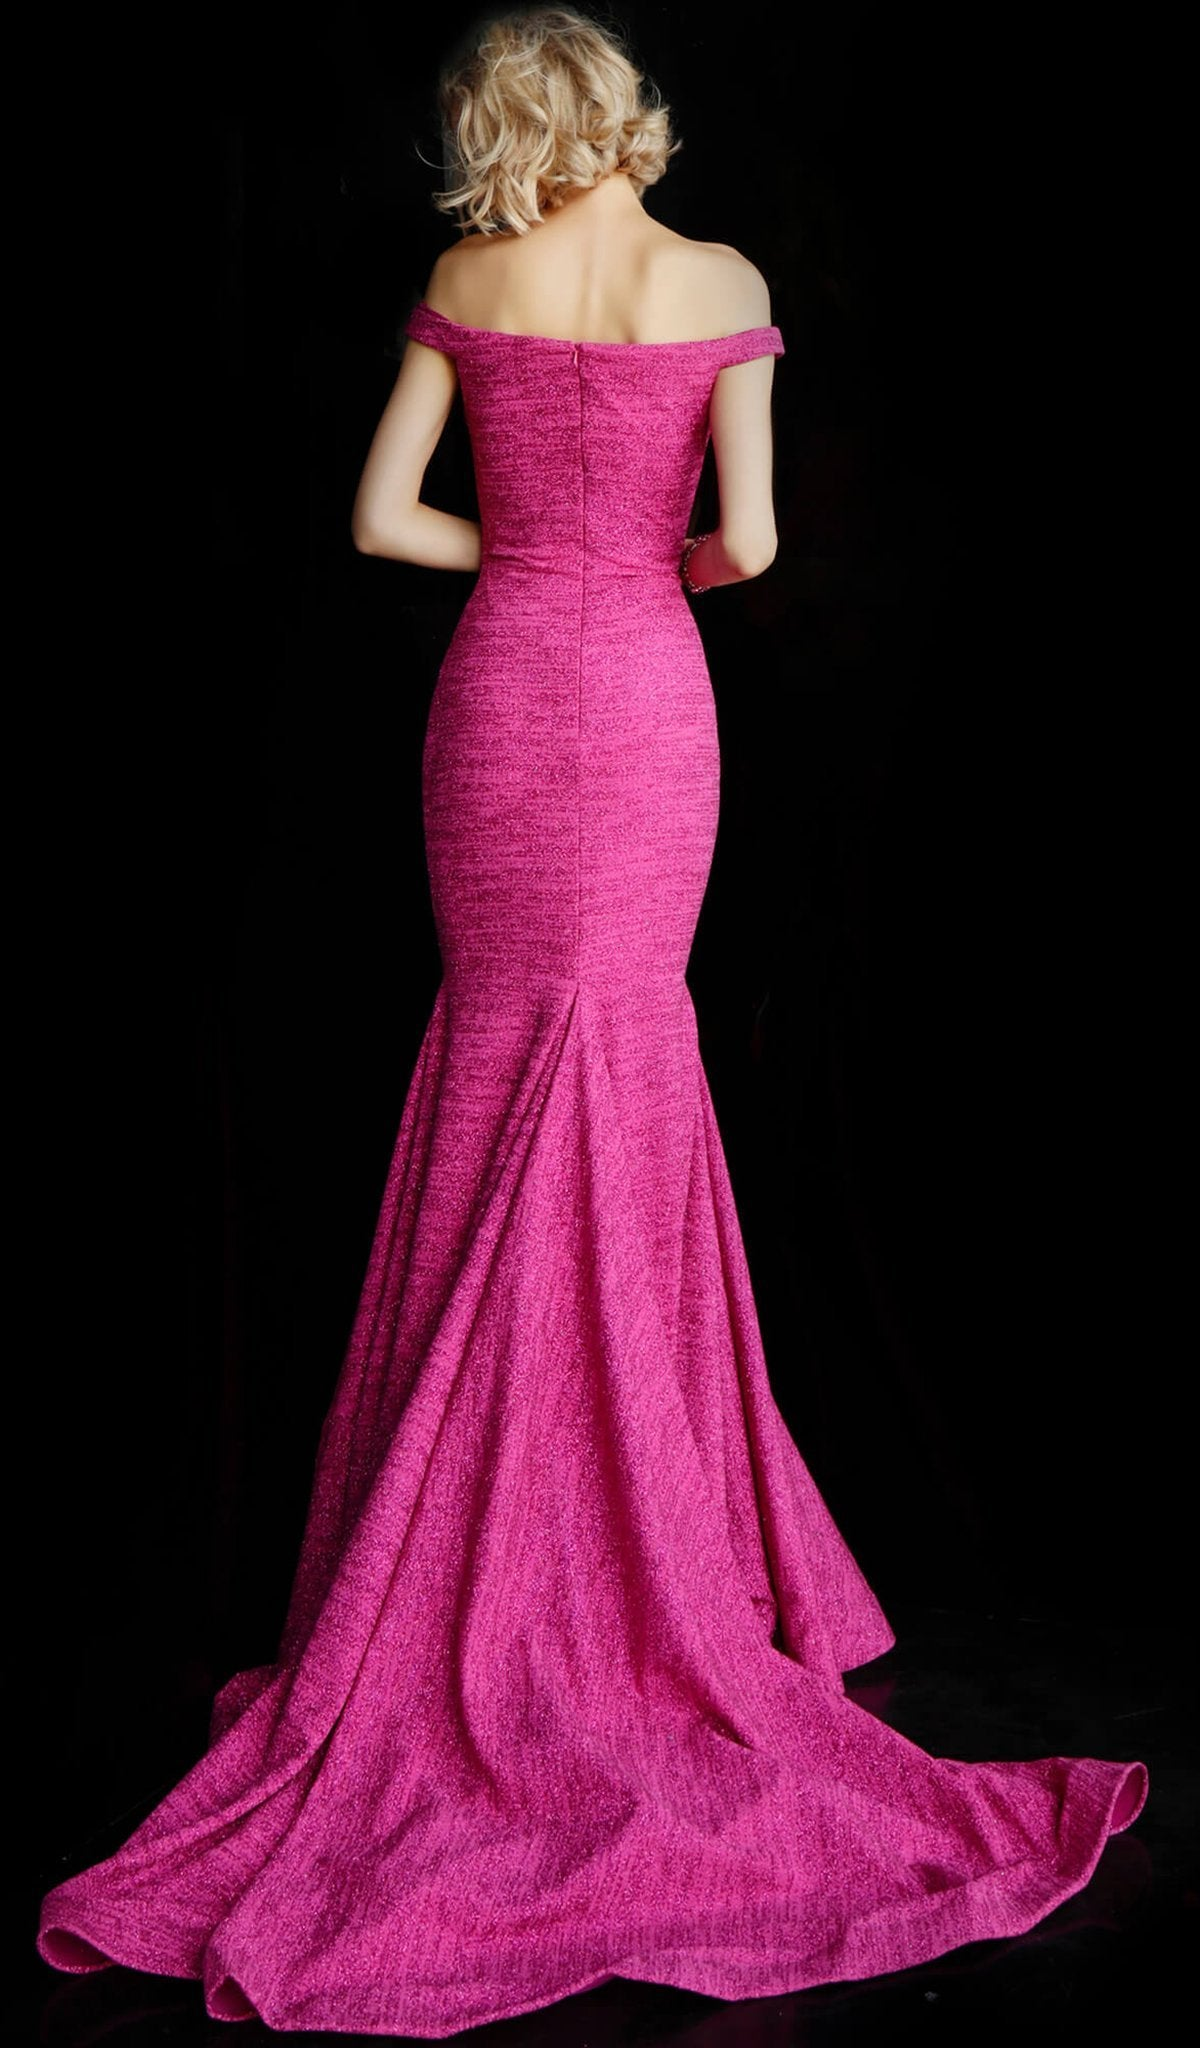 Jovani - Off Shoulder Textured Glitter Mermaid Gown 60122 In Pink